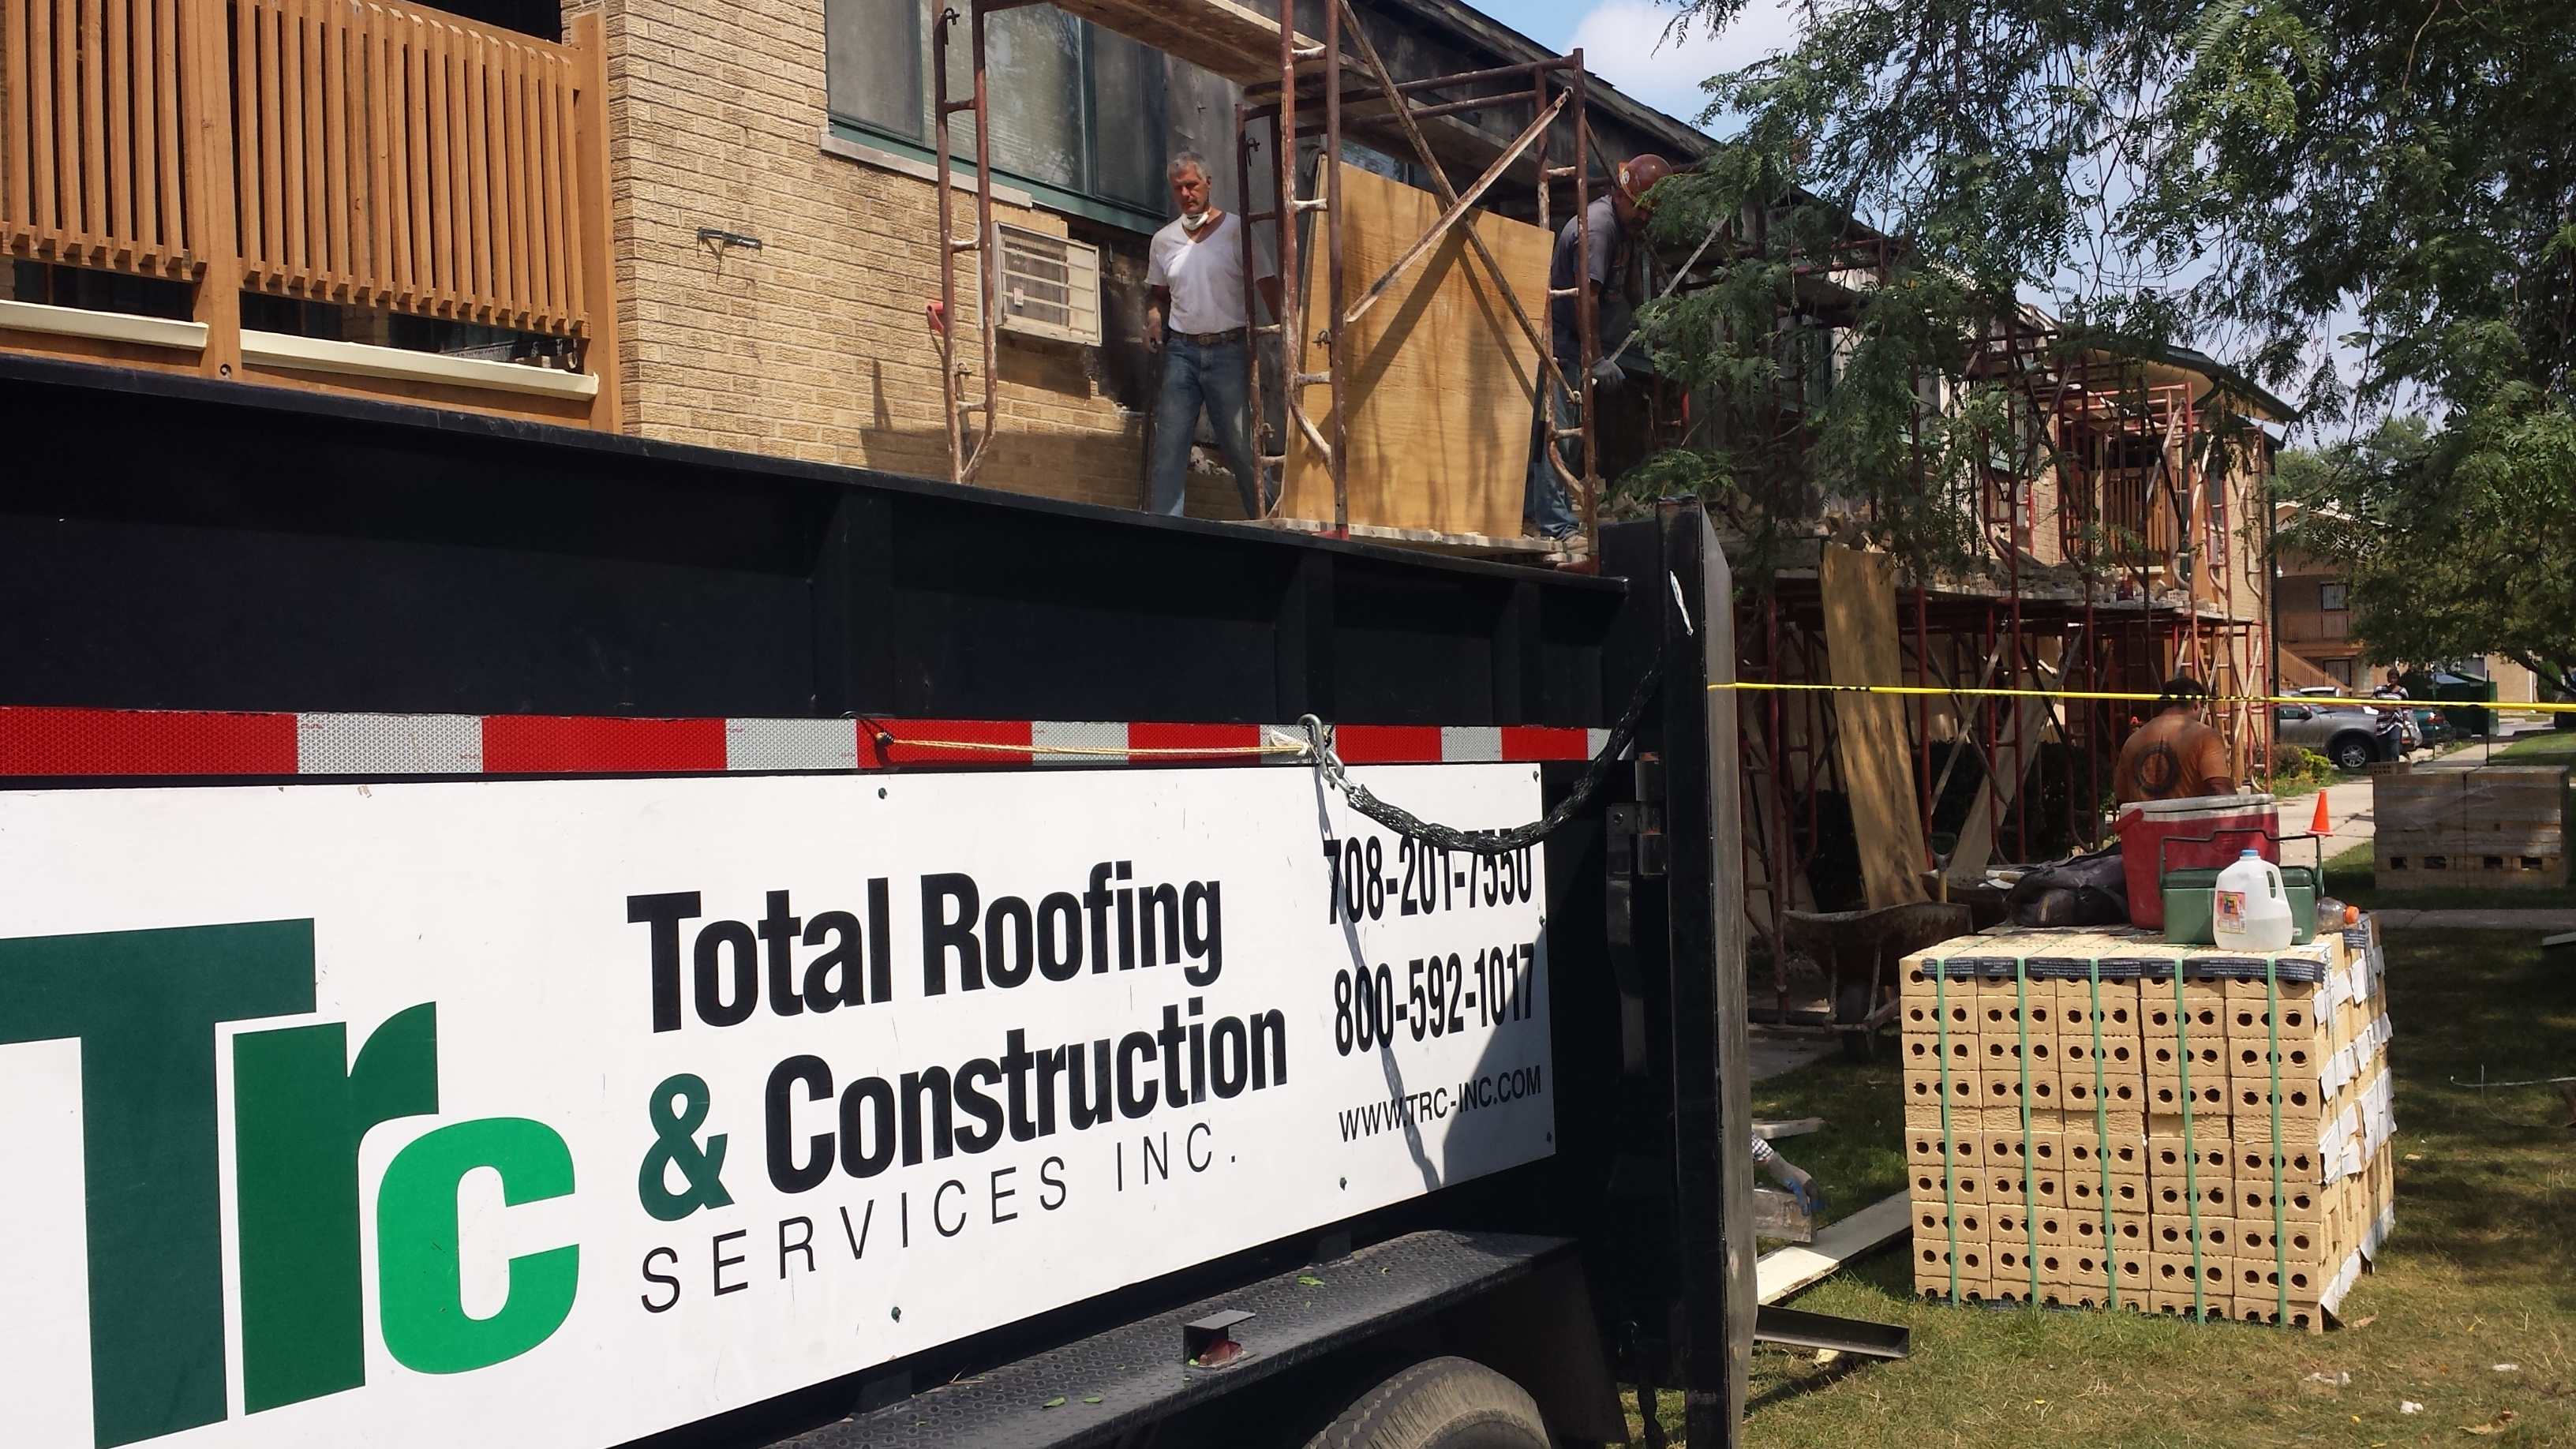 Total Roofing & Construction Services, Inc. image 6